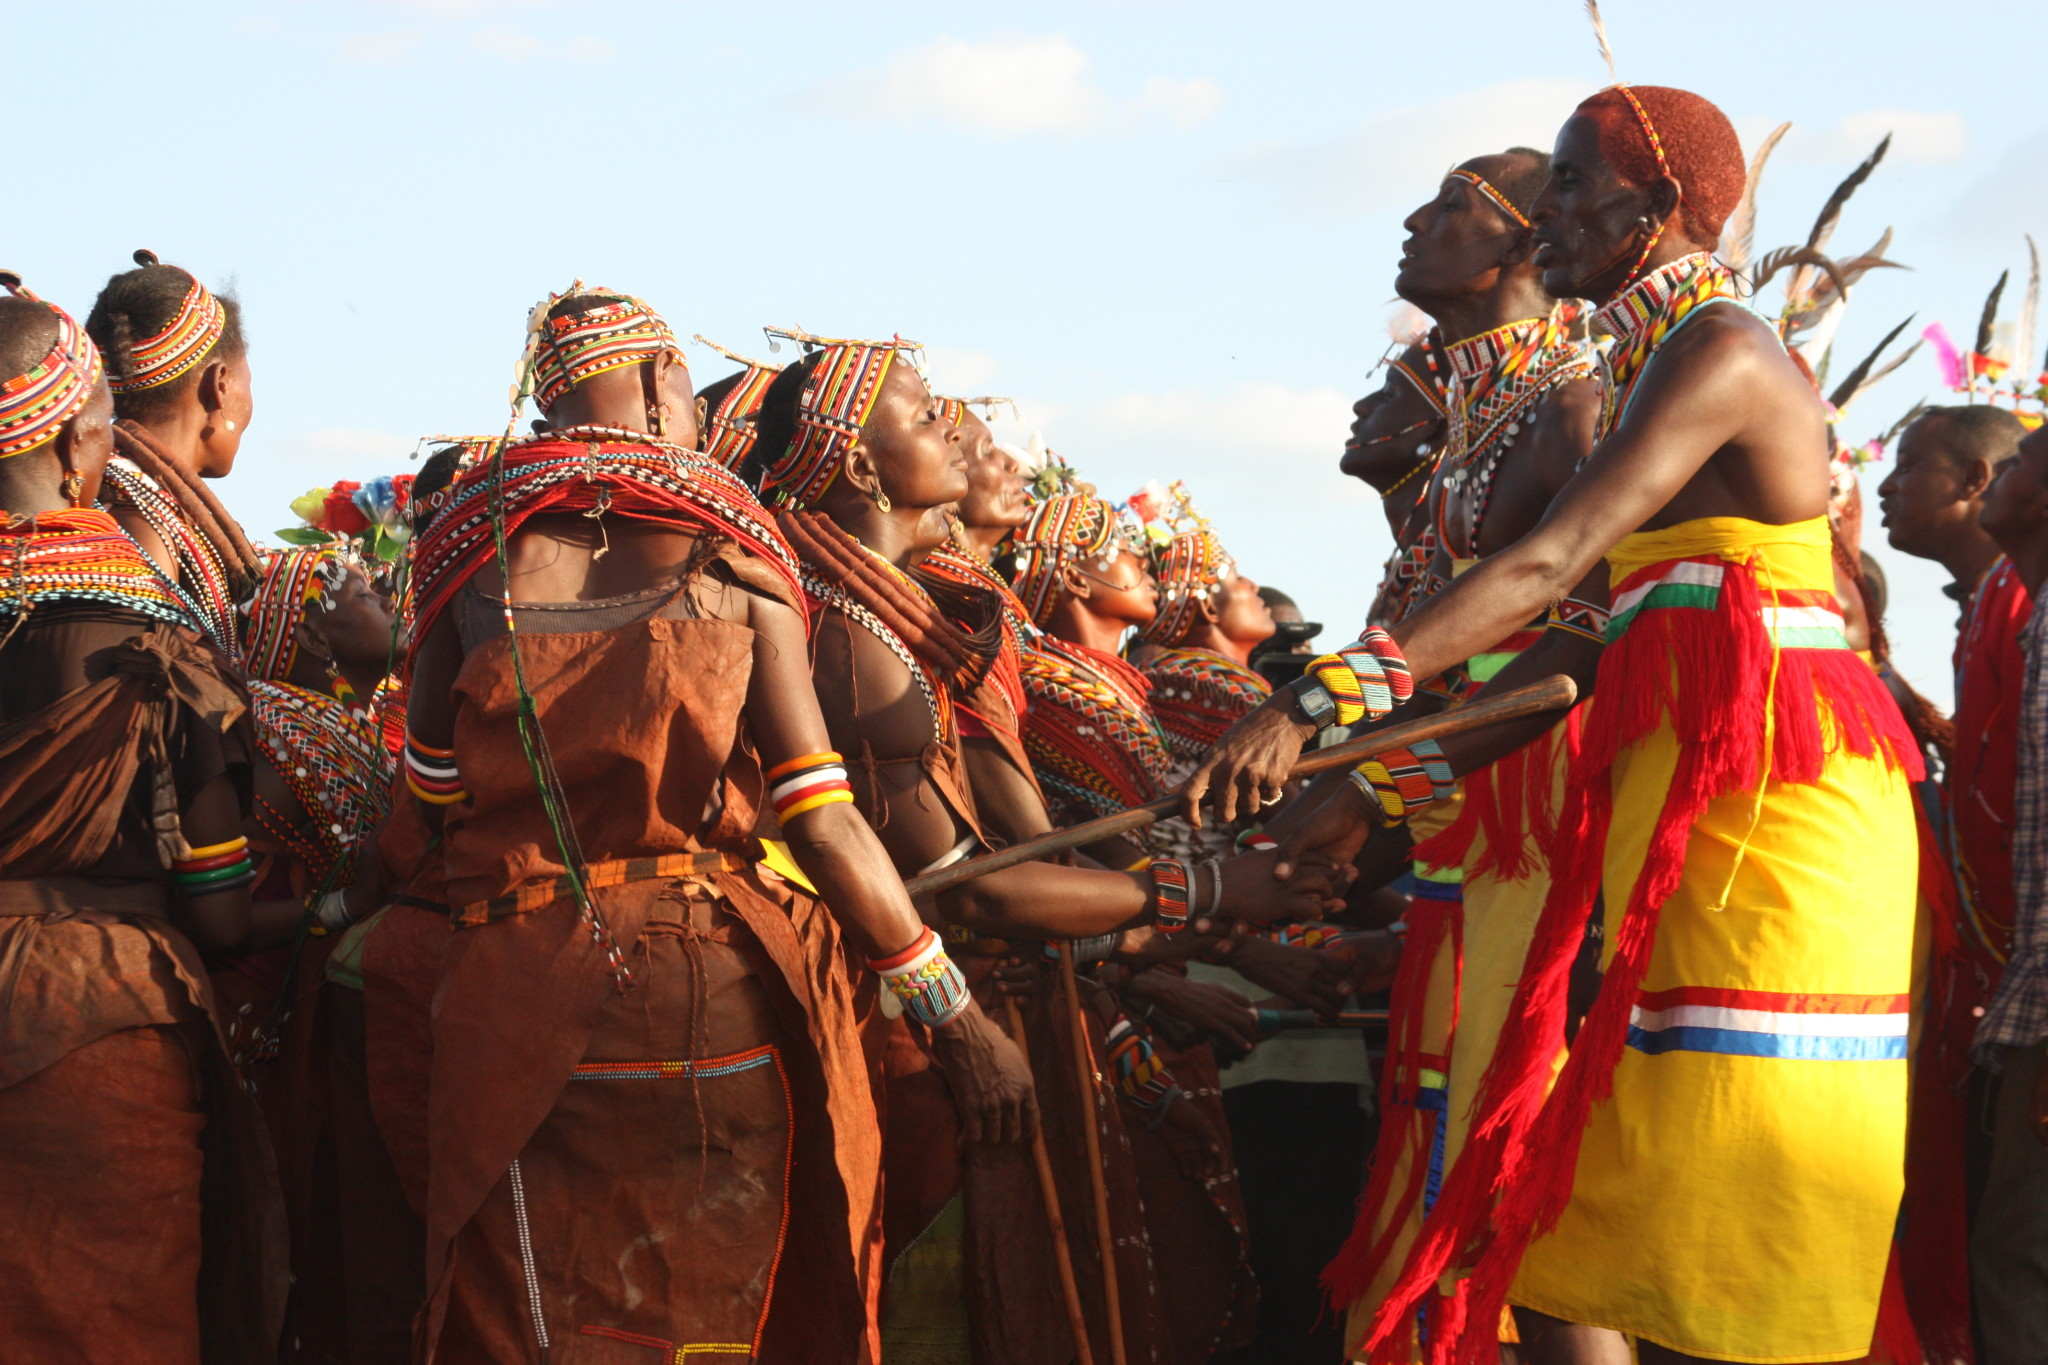 Travel: Why You Should Make A Plan To Visit The Marsabit Lake Turkana Festival